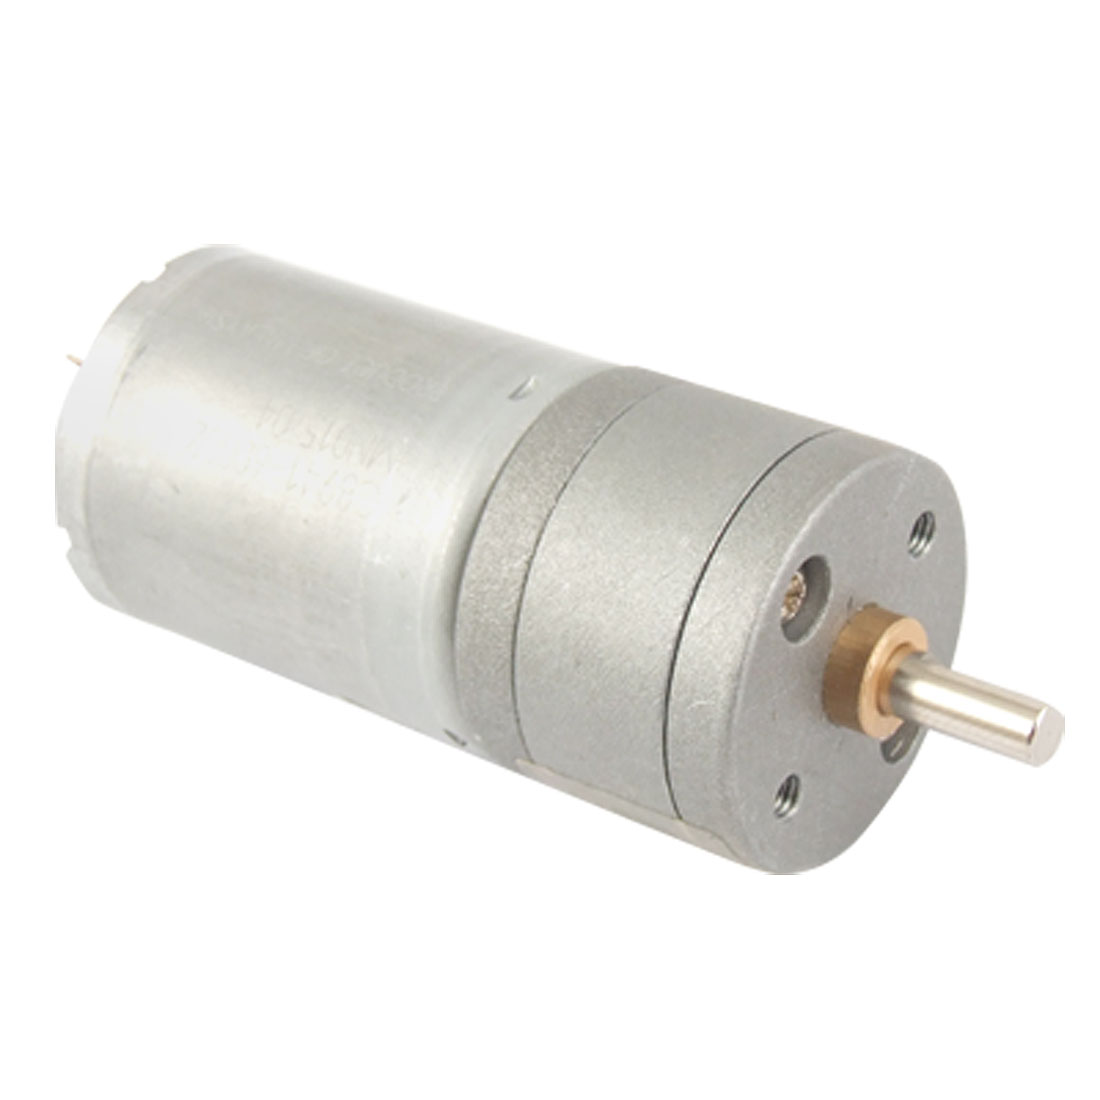 12V 40-50mA 400RPM 4mm Shaft 25mm Diameter DC Geared Motor w Gearbox